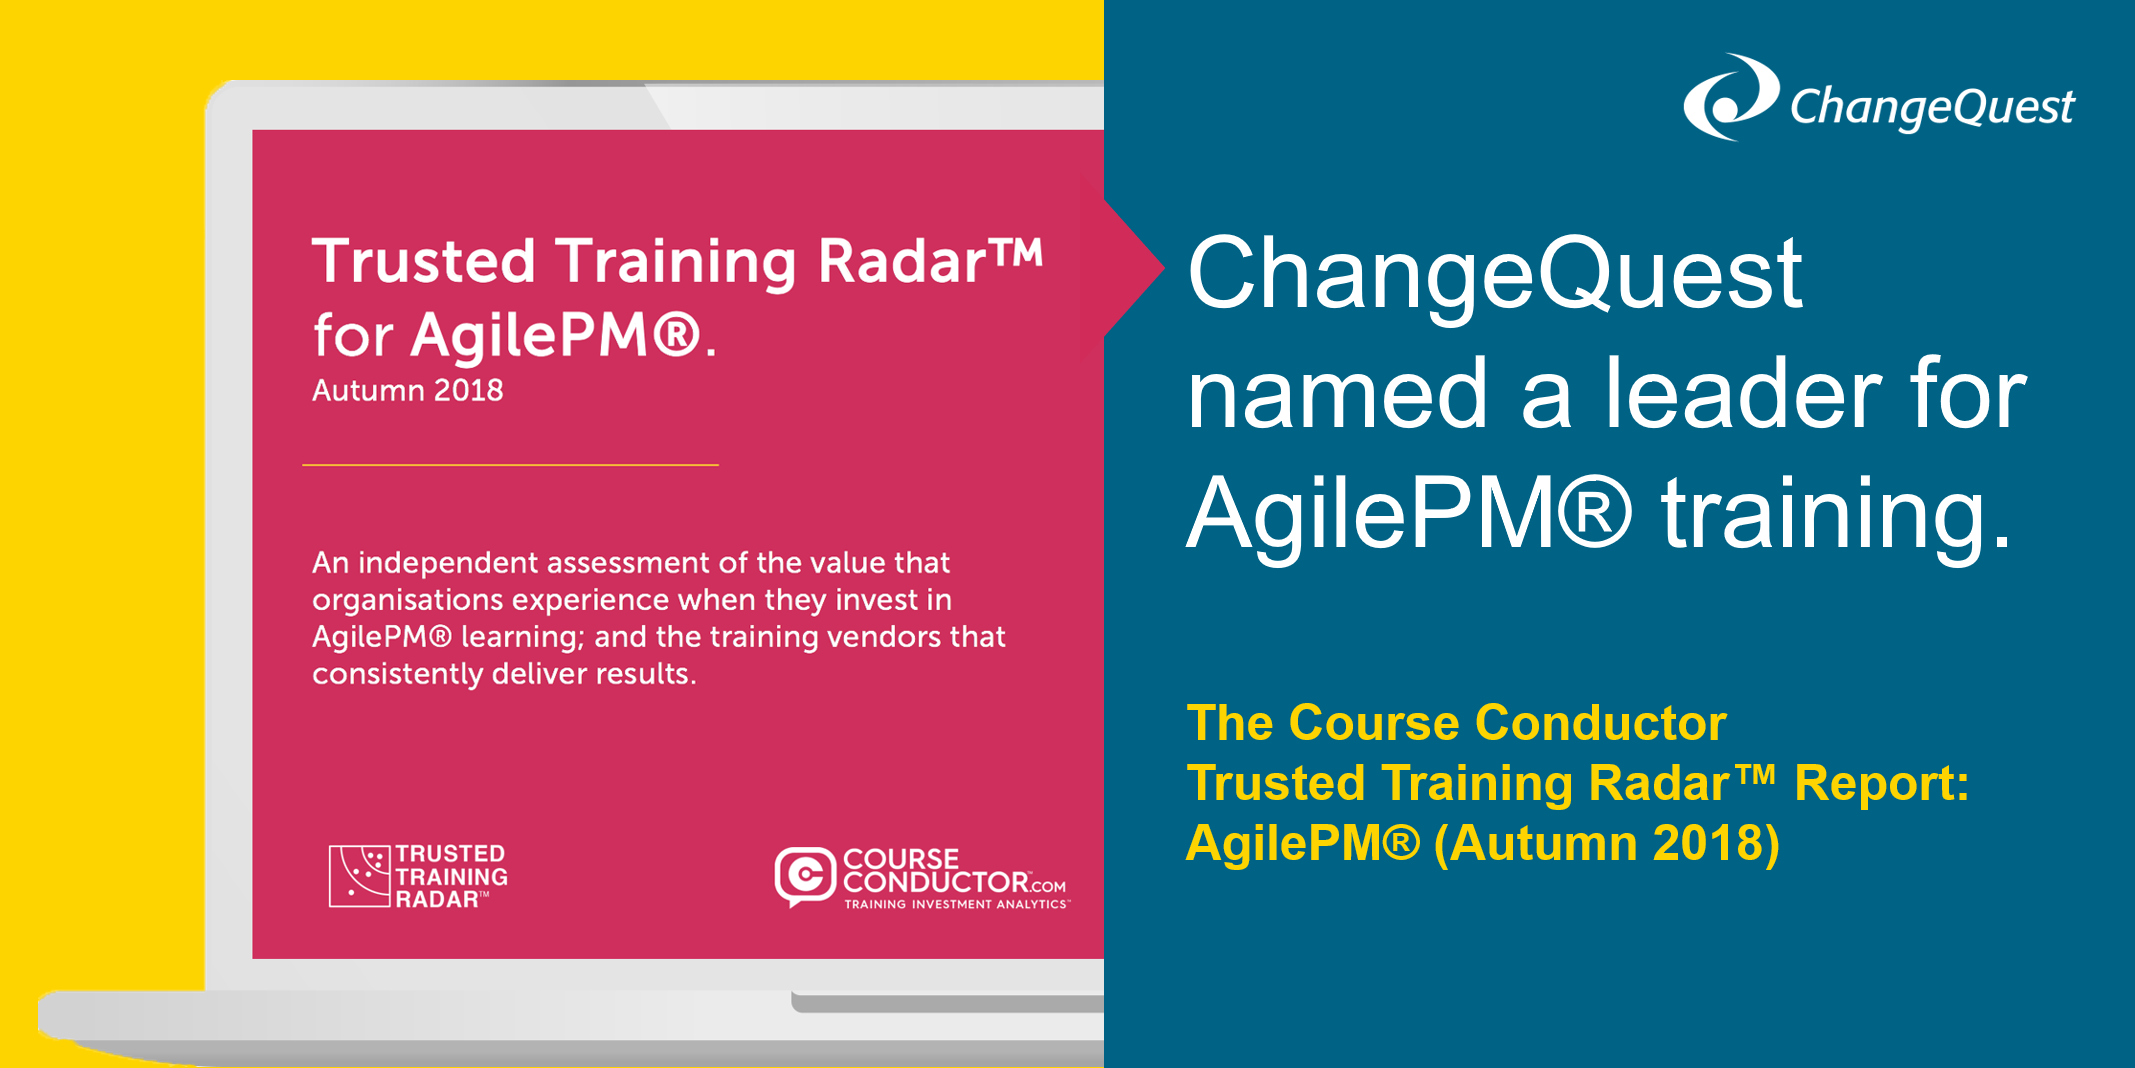 ChangeQuest named a leader for AgilePM training